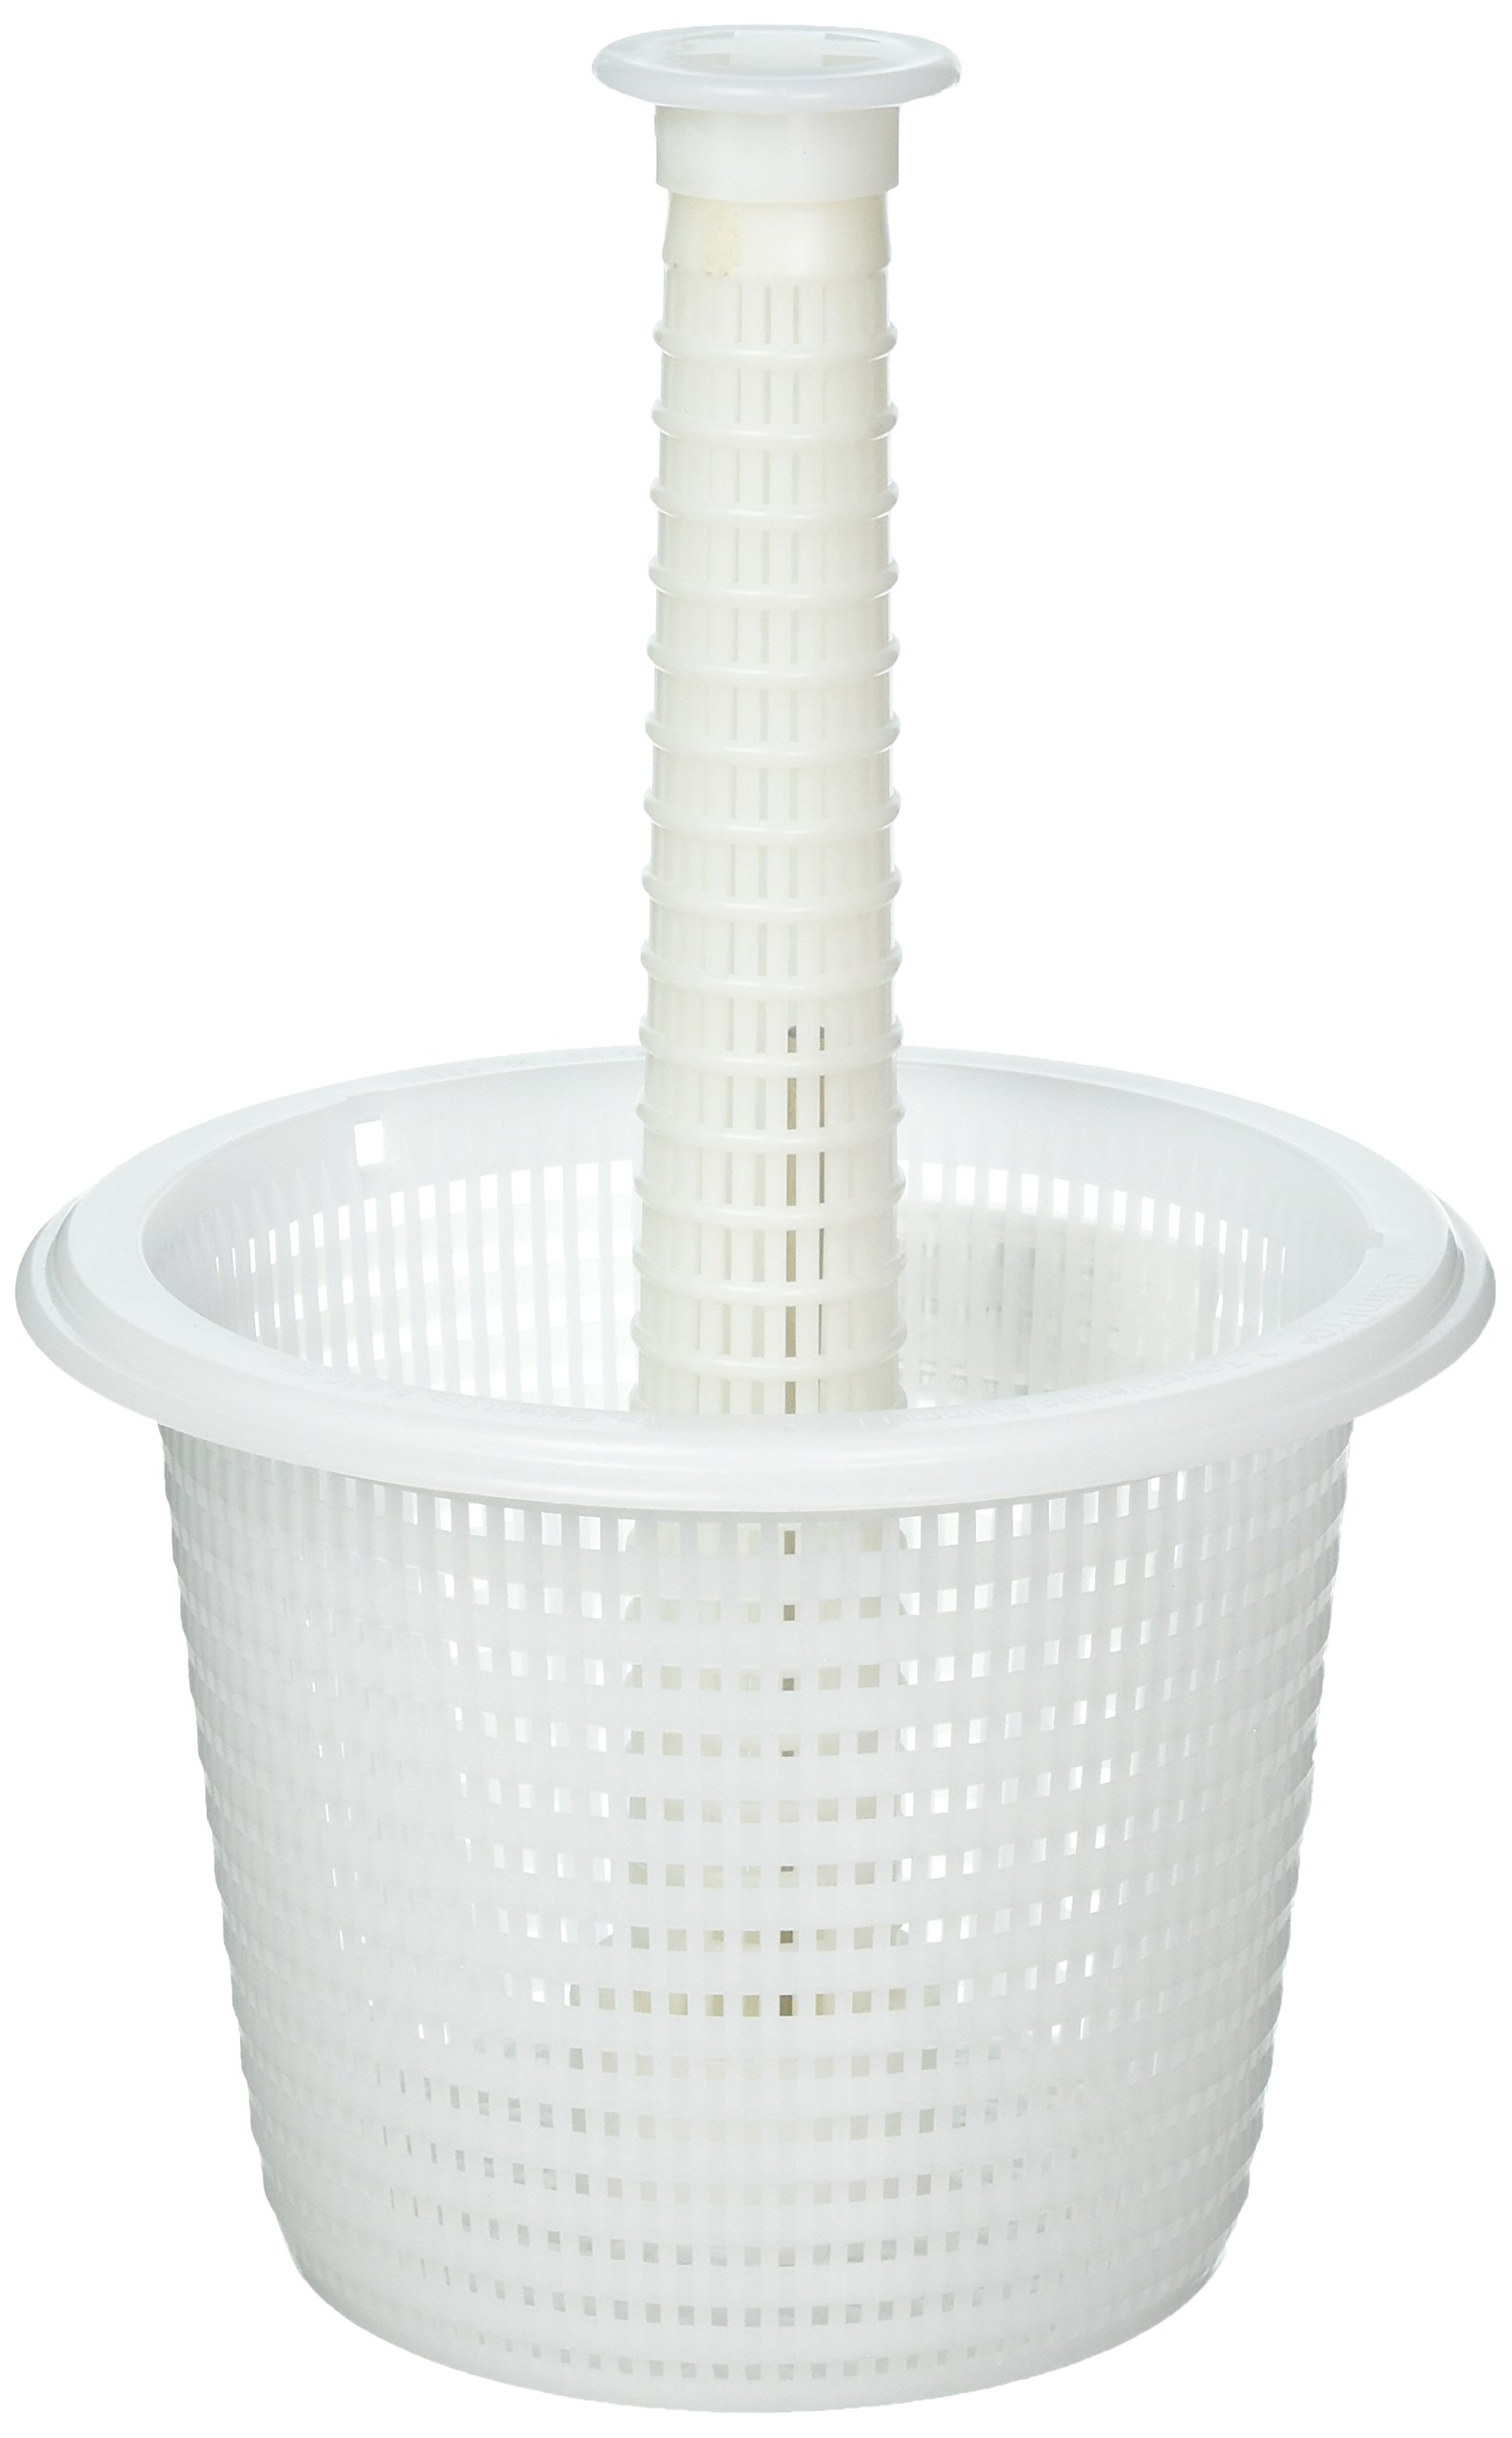 SkimPro Tower-Vented Skimmer Basket with Tower and Handle by SkimPro